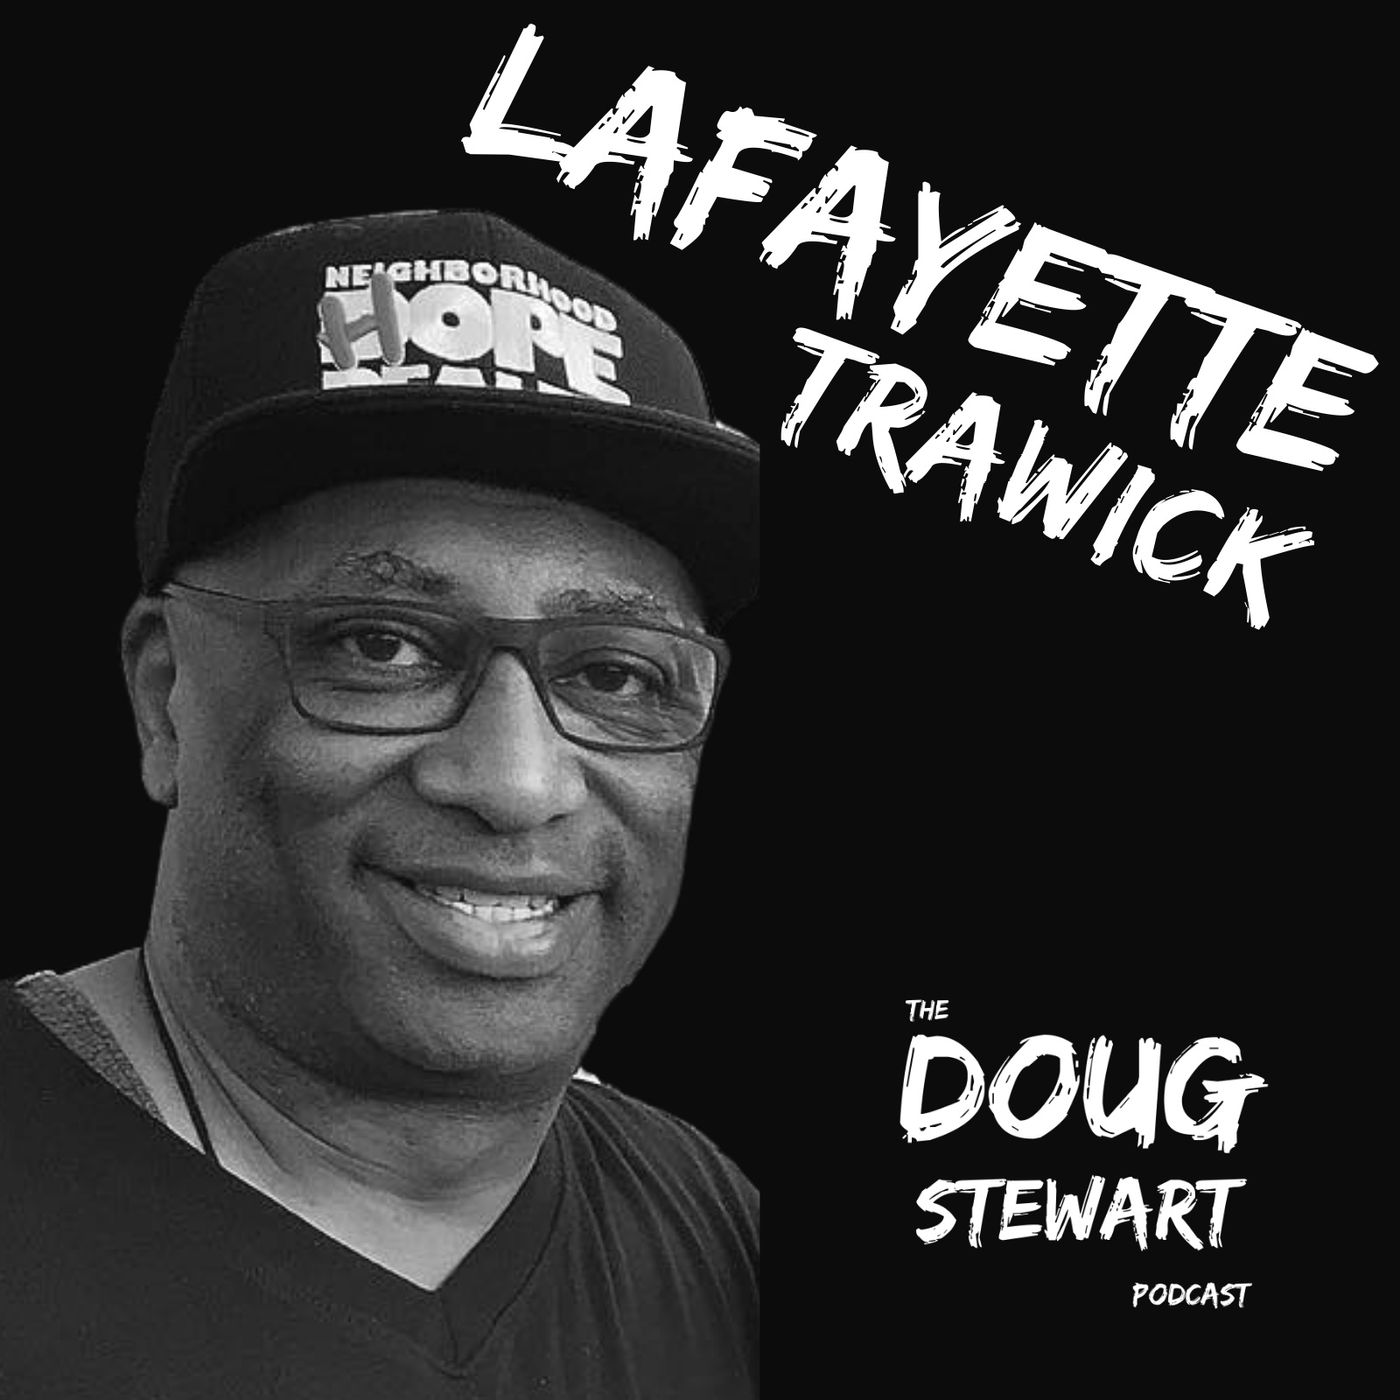 Session 8: LaFayette Trawick - How To Be An Advocate